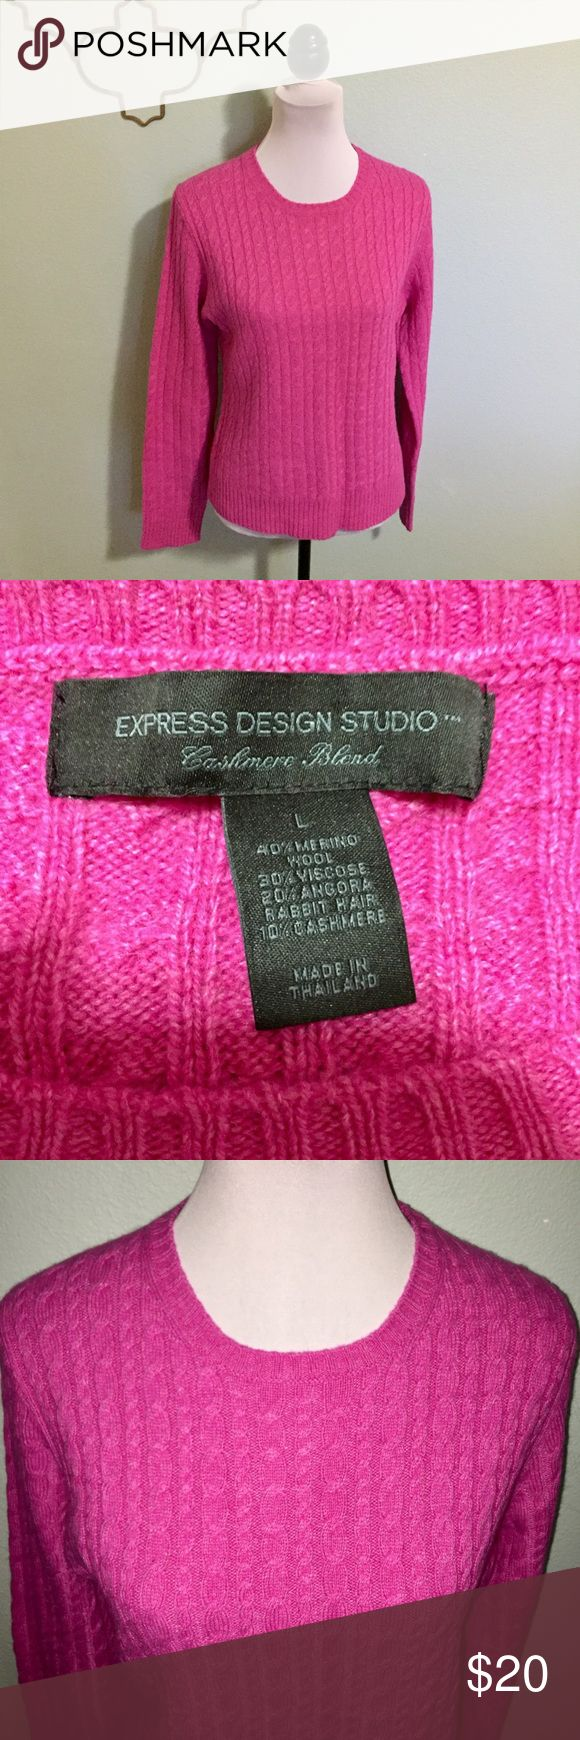 Express hot pink Cashmere blend cable knit sweater Express Cashmere blend hot pink cable knit sweater. Size Large. 40% Merino wool, 20% viscose, 20% Angora rabbit hair. Express Sweaters Crew & Scoop Necks